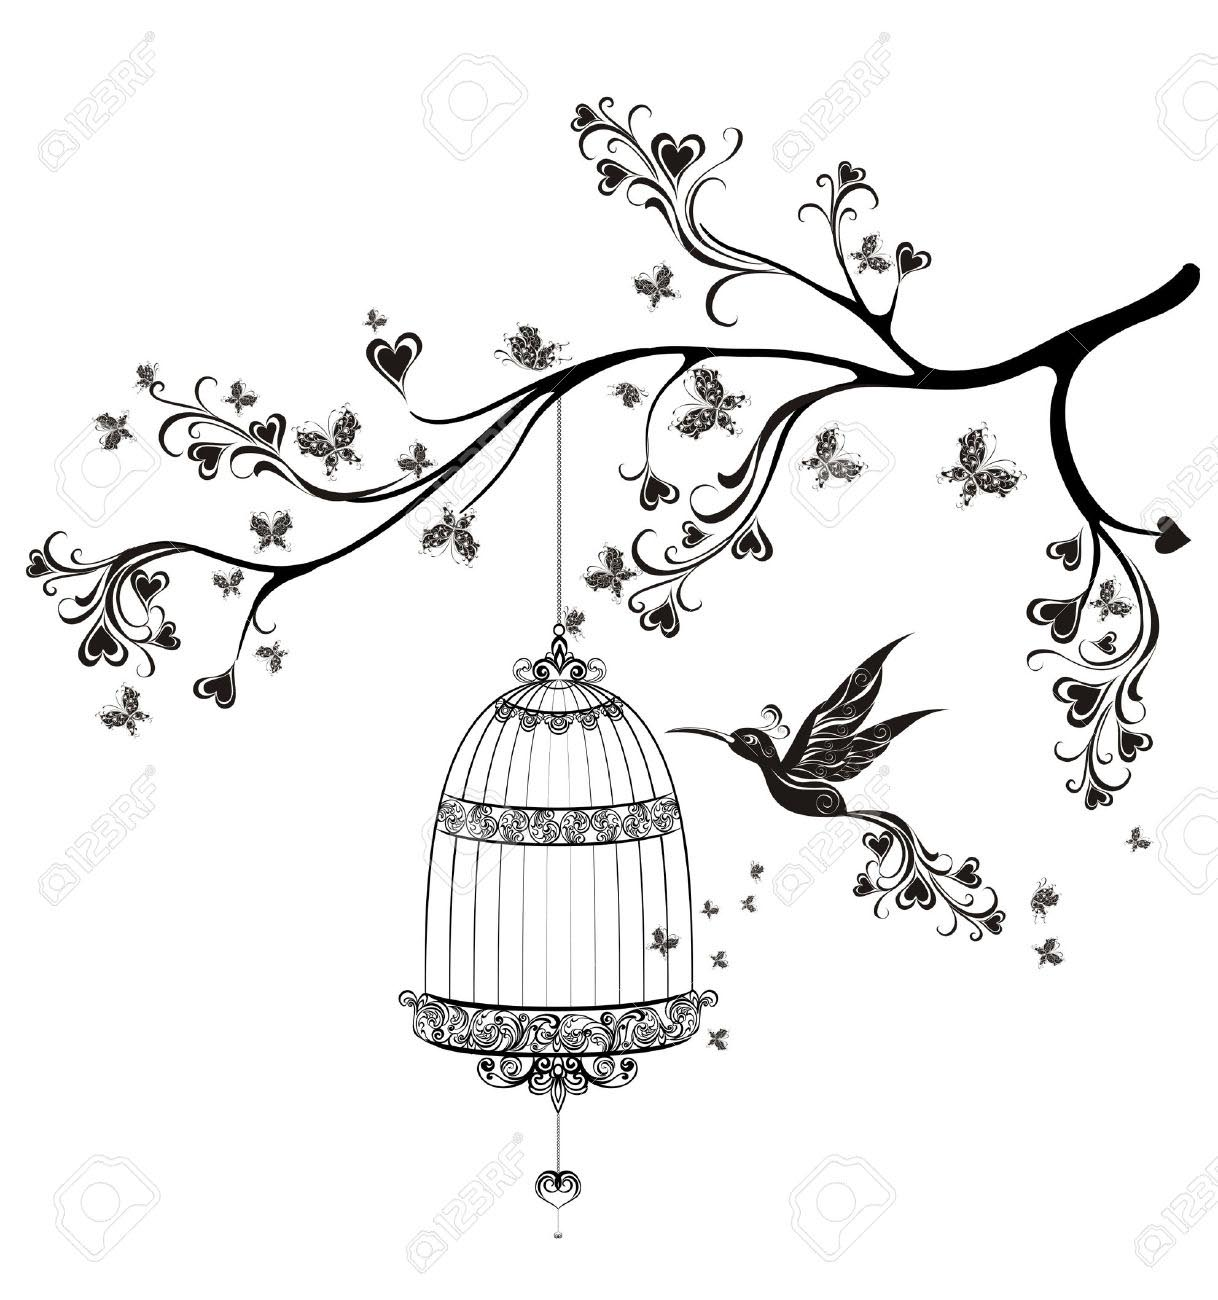 Bird Flying Out of Cage-Drawing